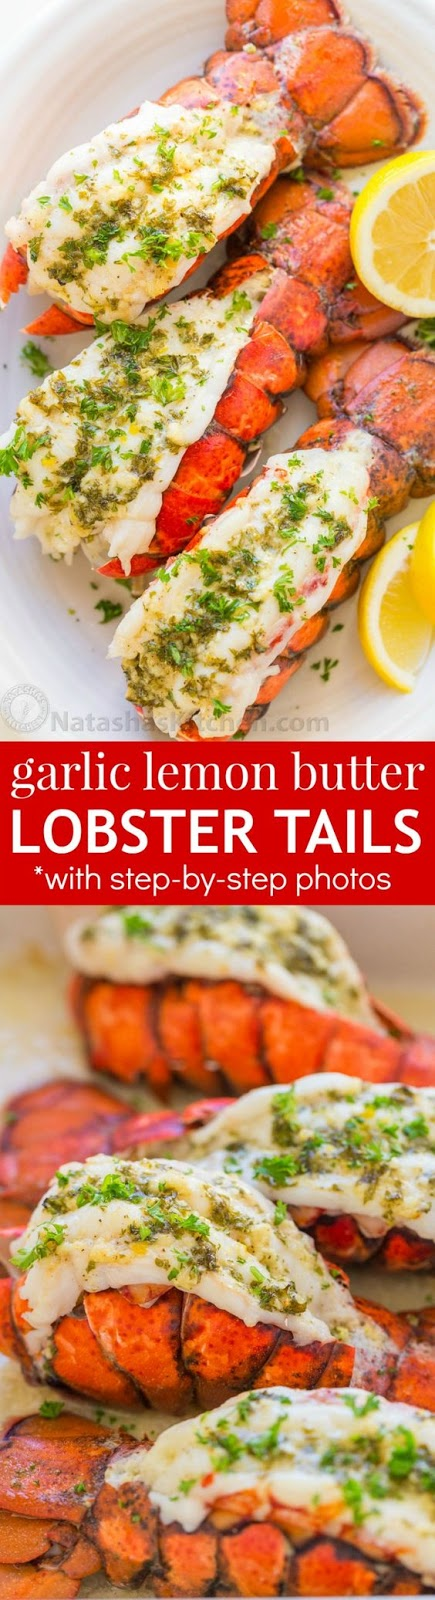 ★★★★☆ 7561 ratings |Lobster Tails Recipe with Garlic Lemon Butter #HEALTHYFOOD #EASYRECIPES #DINNER #LAUCH #DELICIOUS #EASY #HOLIDAYS #RECIPE #Lobster #Tails #Recipe #Garlic #Lemon #Butter